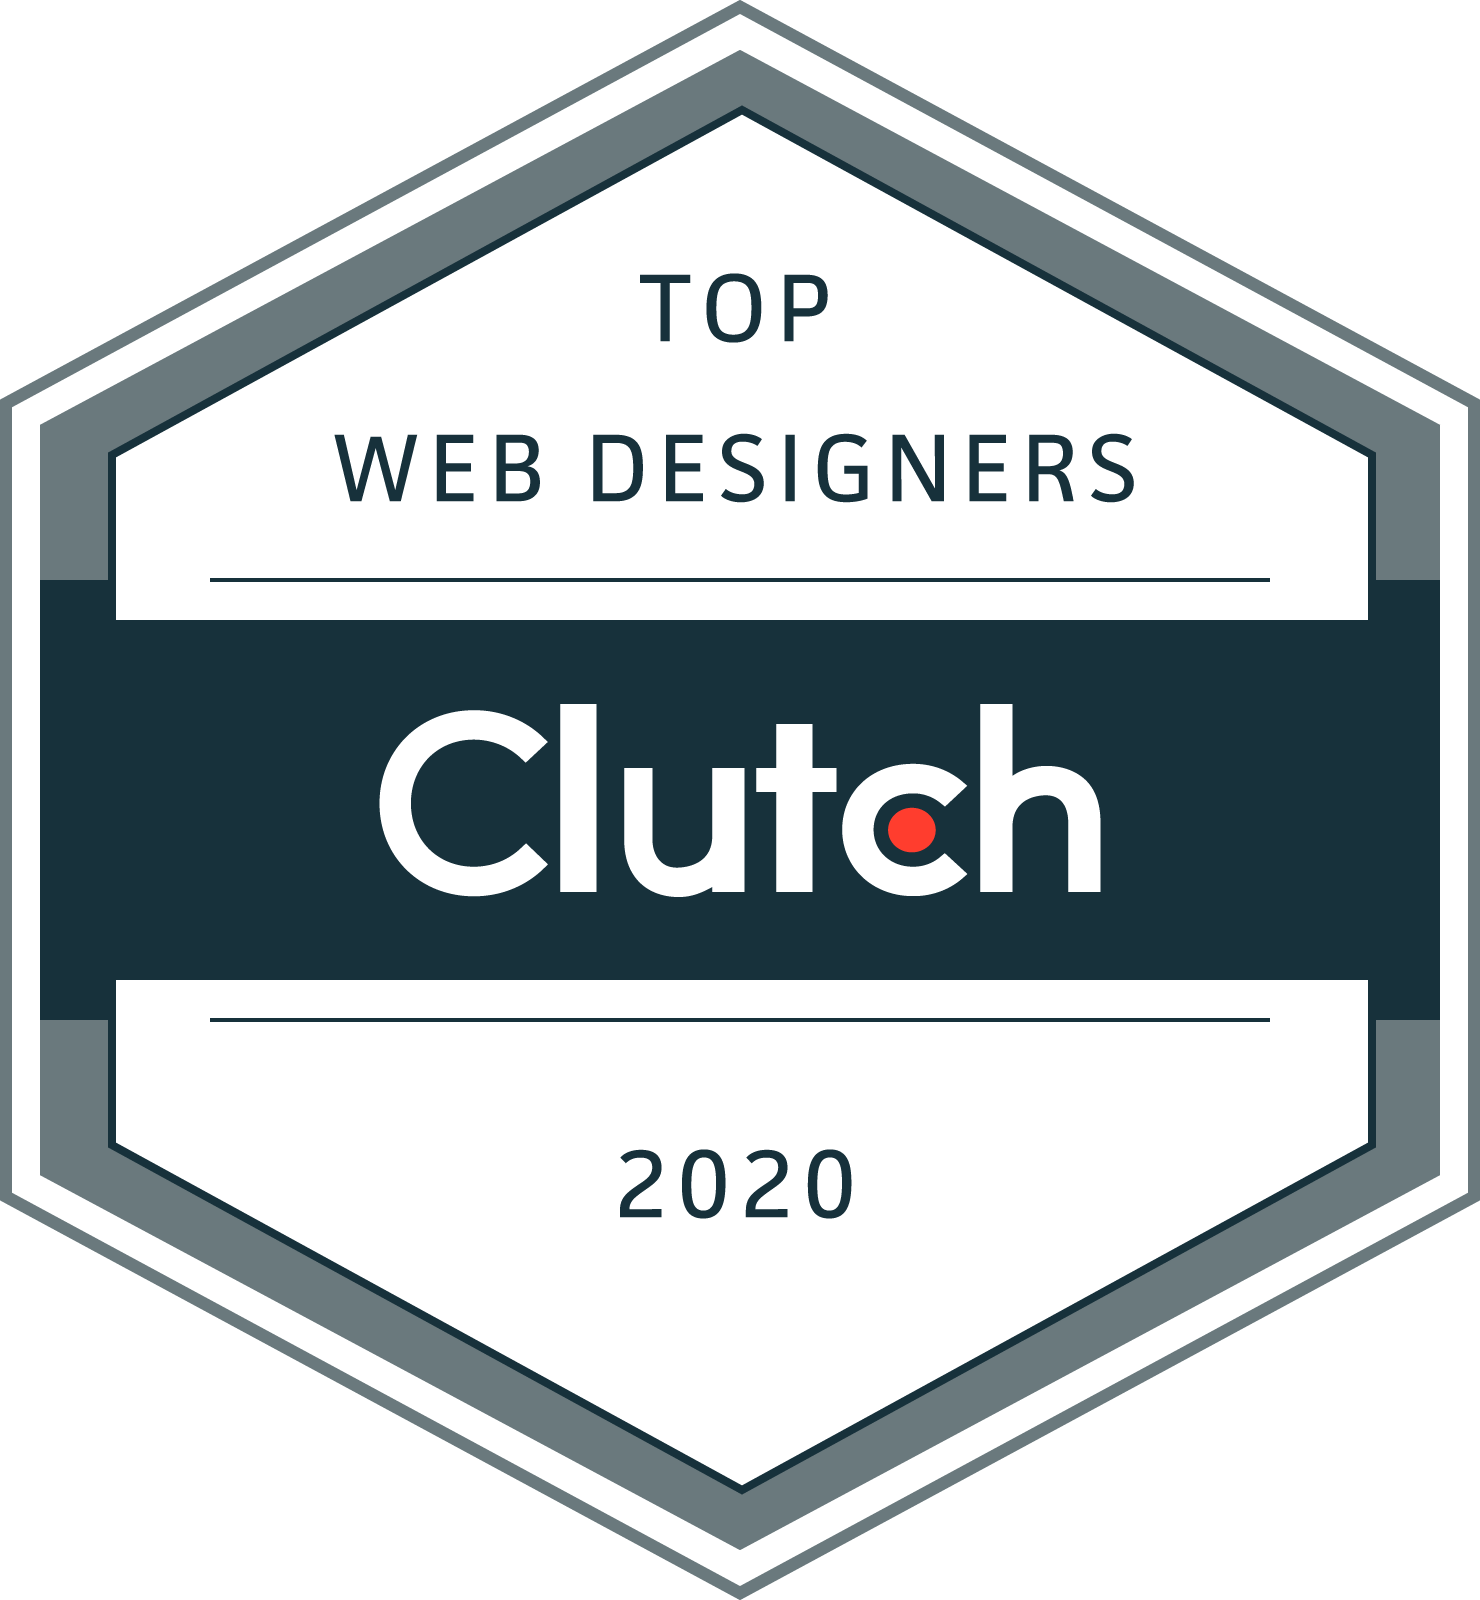 Clutch - Top Web Designers 2020